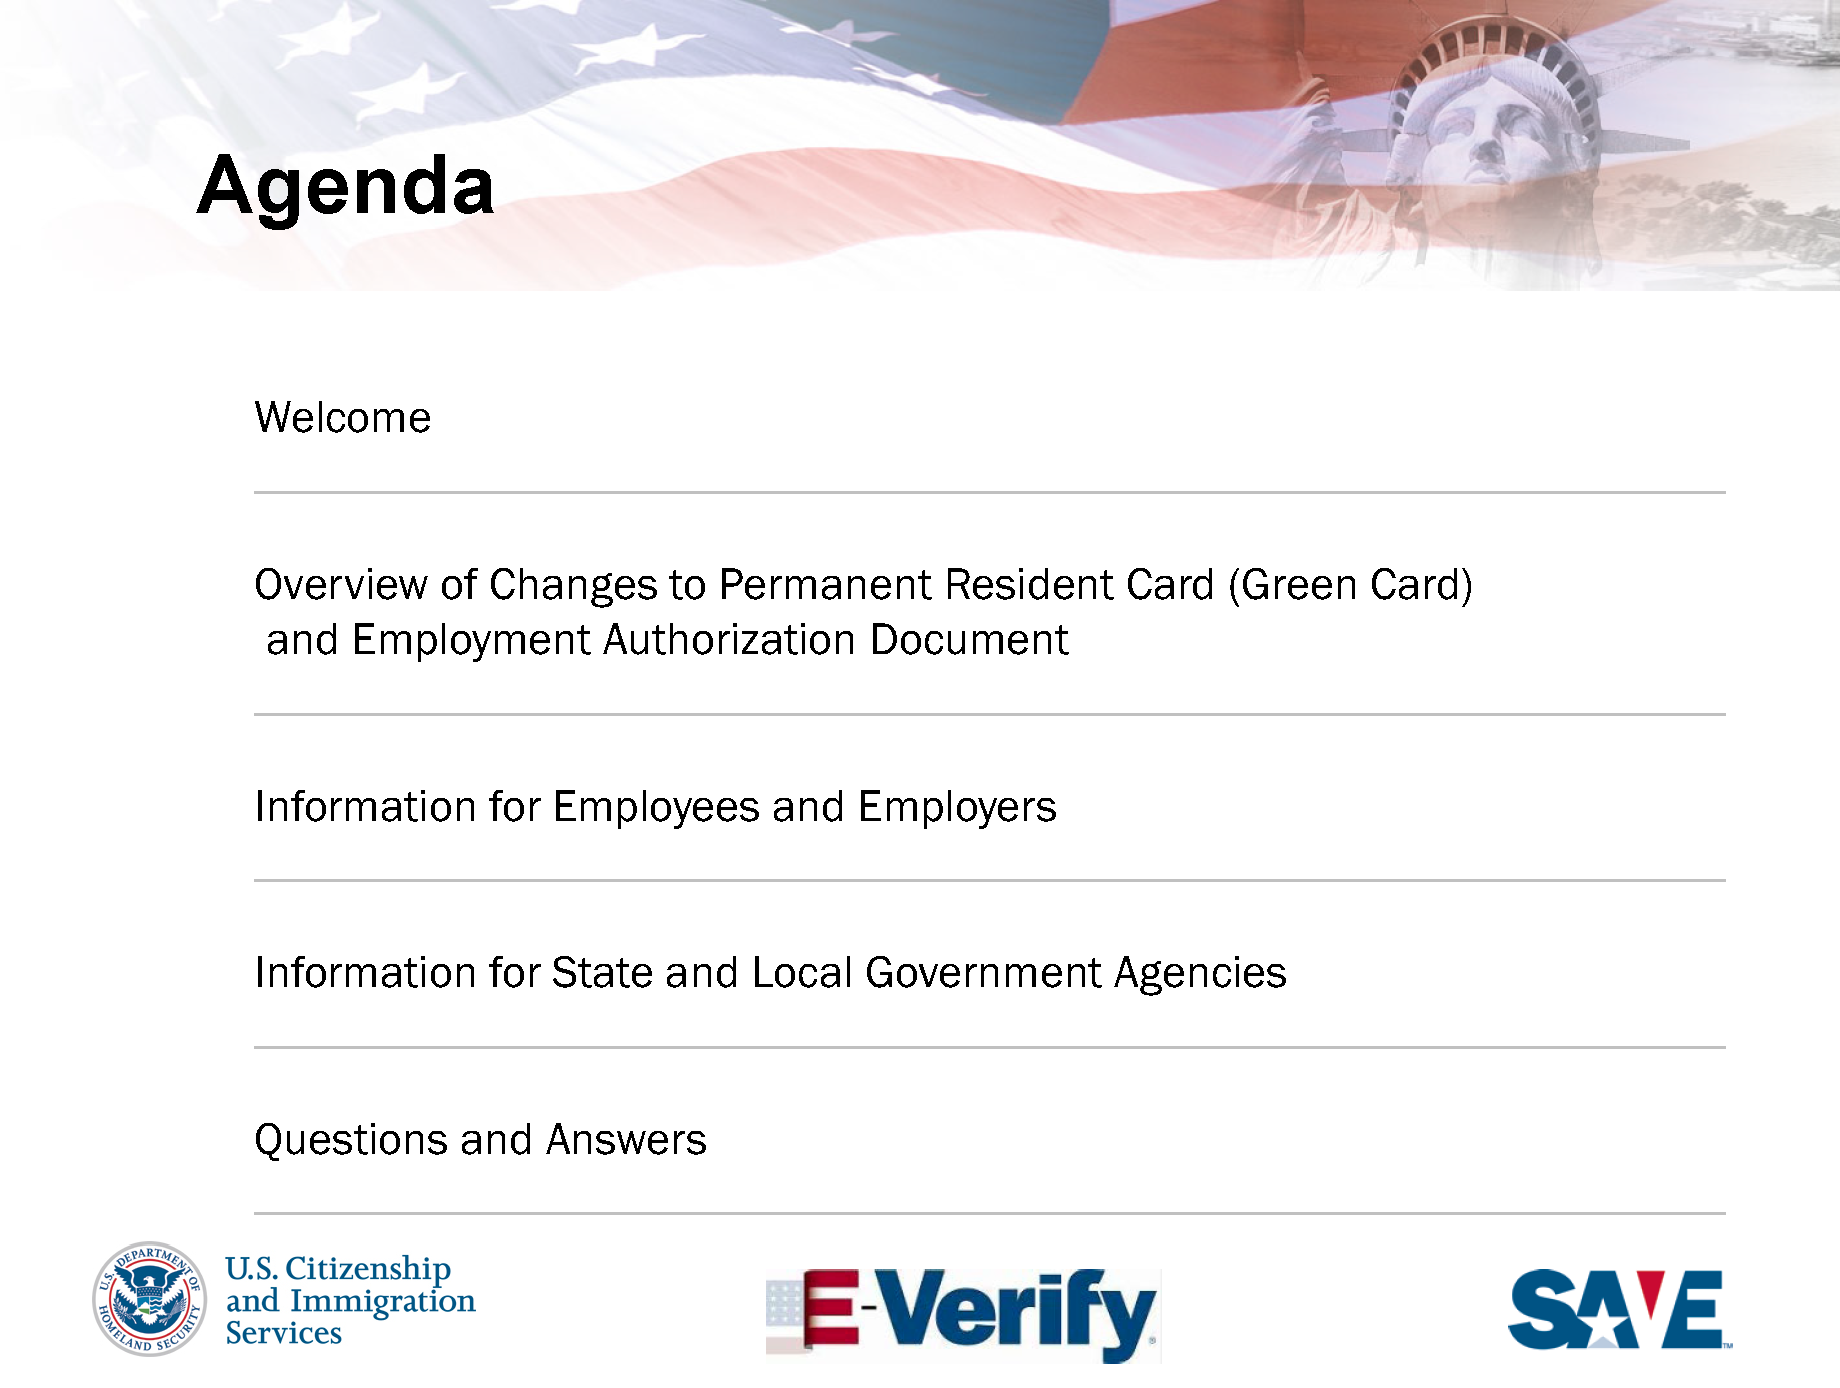 PED_-_redesigned_green_card_and_EAD_webinar_5-8-17_Page_02.png